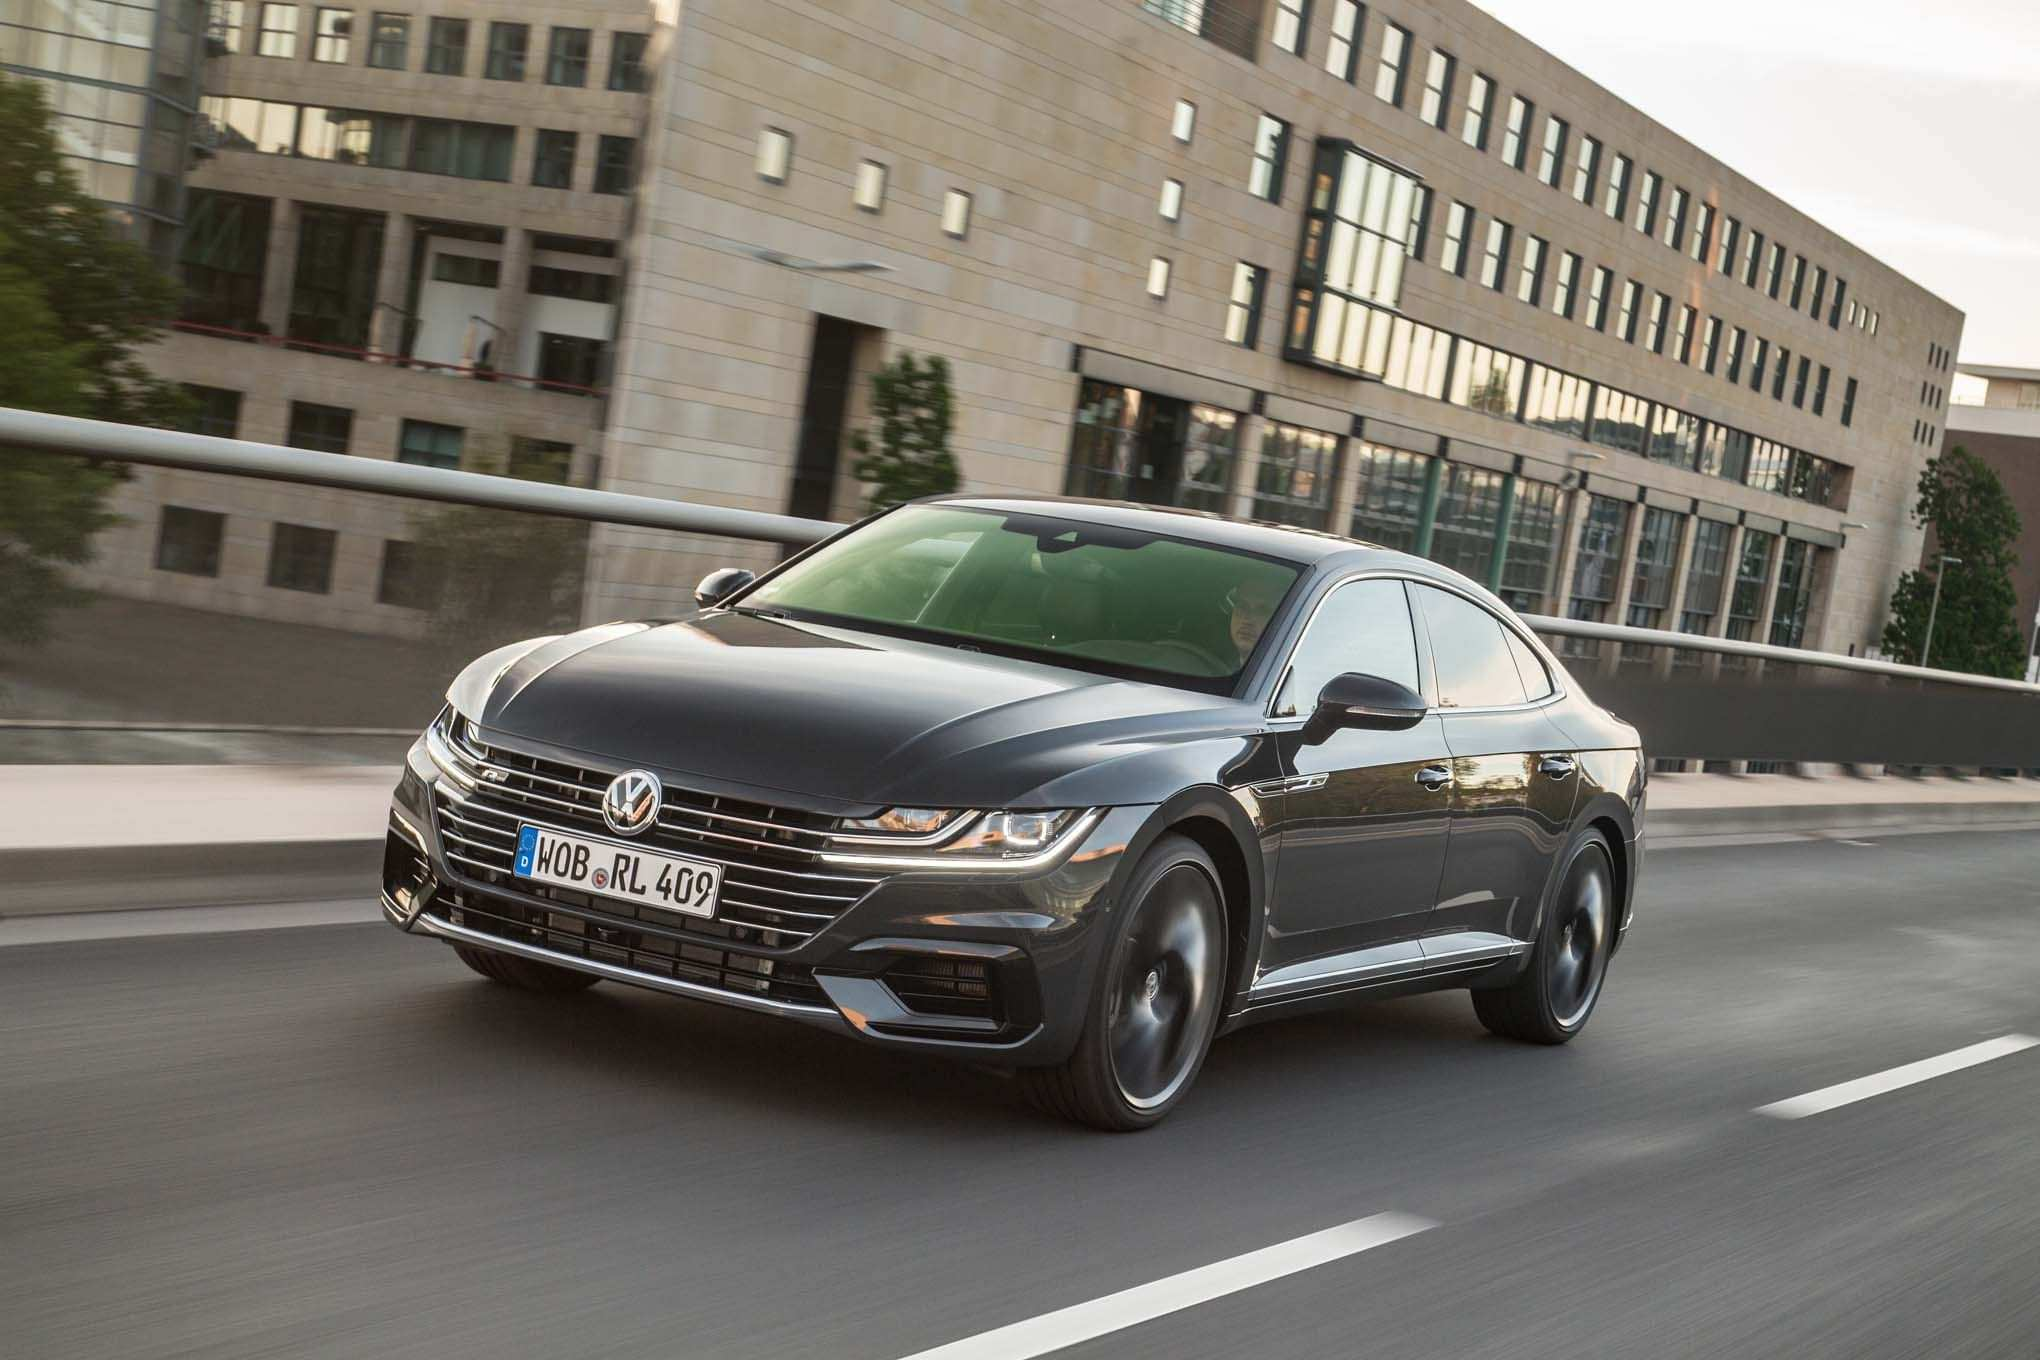 93 All New Volkswagen Arteon 2019 Release Date Redesign And Concept